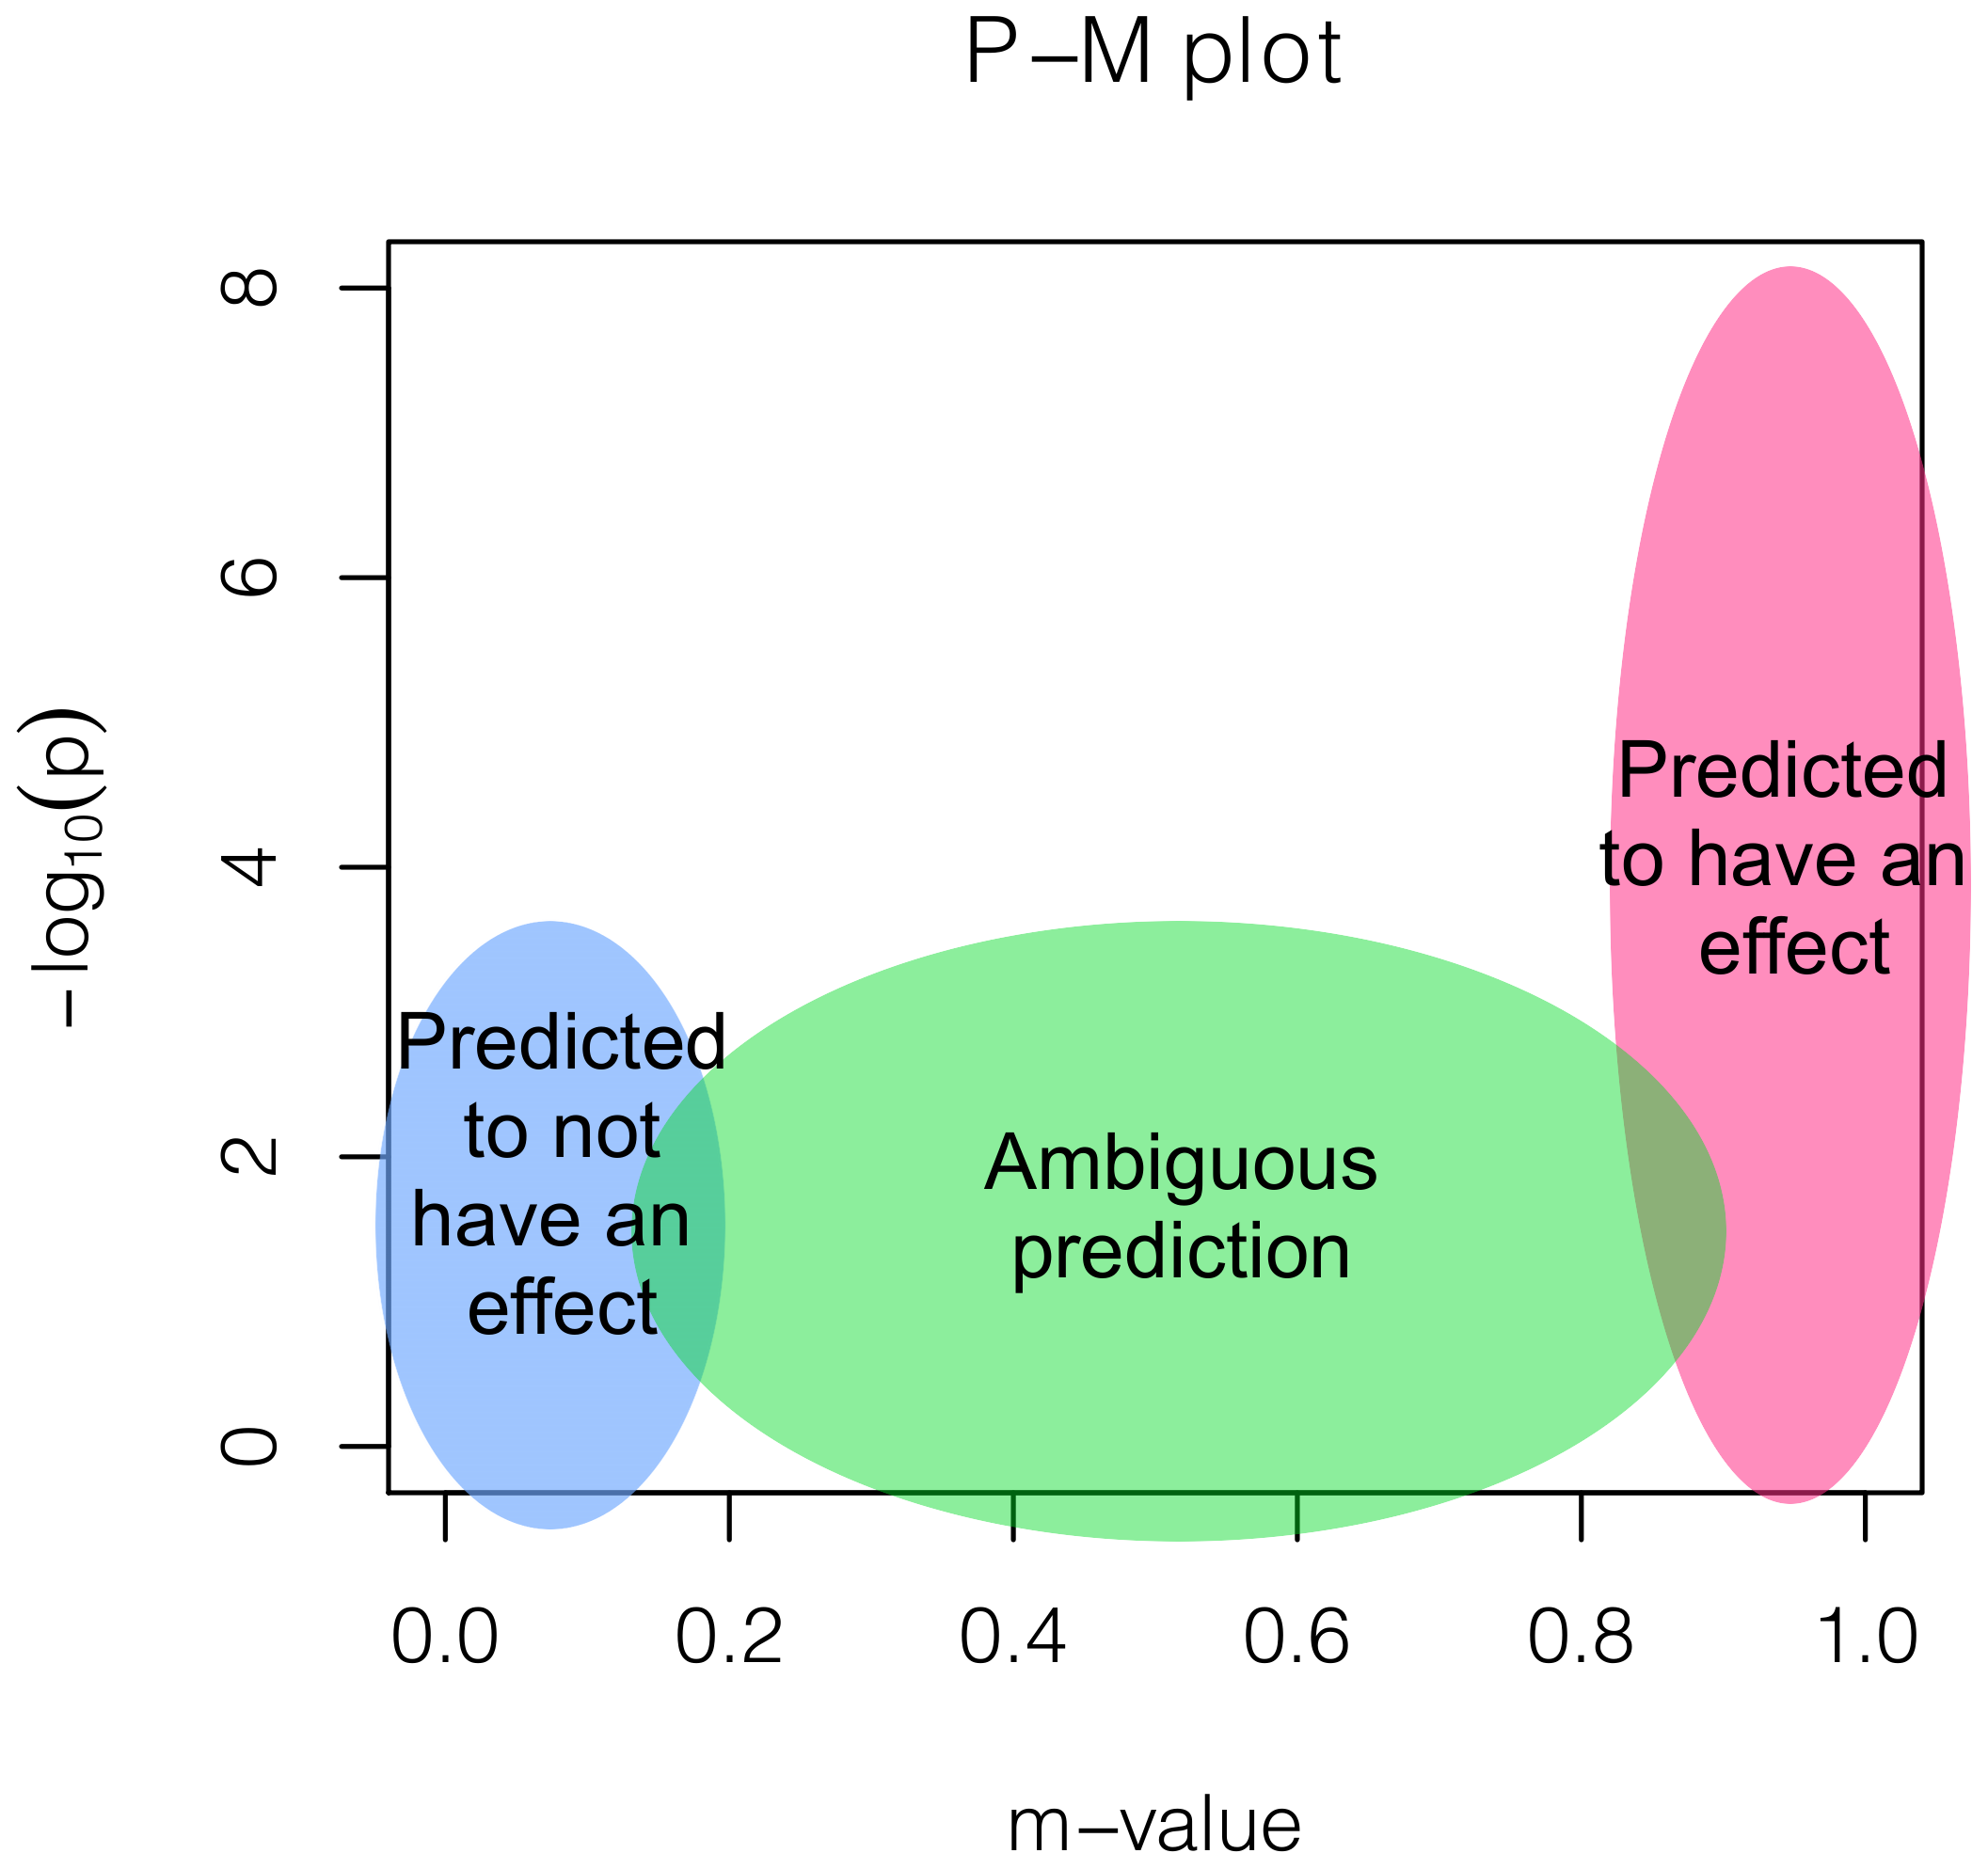 A figure depicting the interpretations based on a P-M plot.